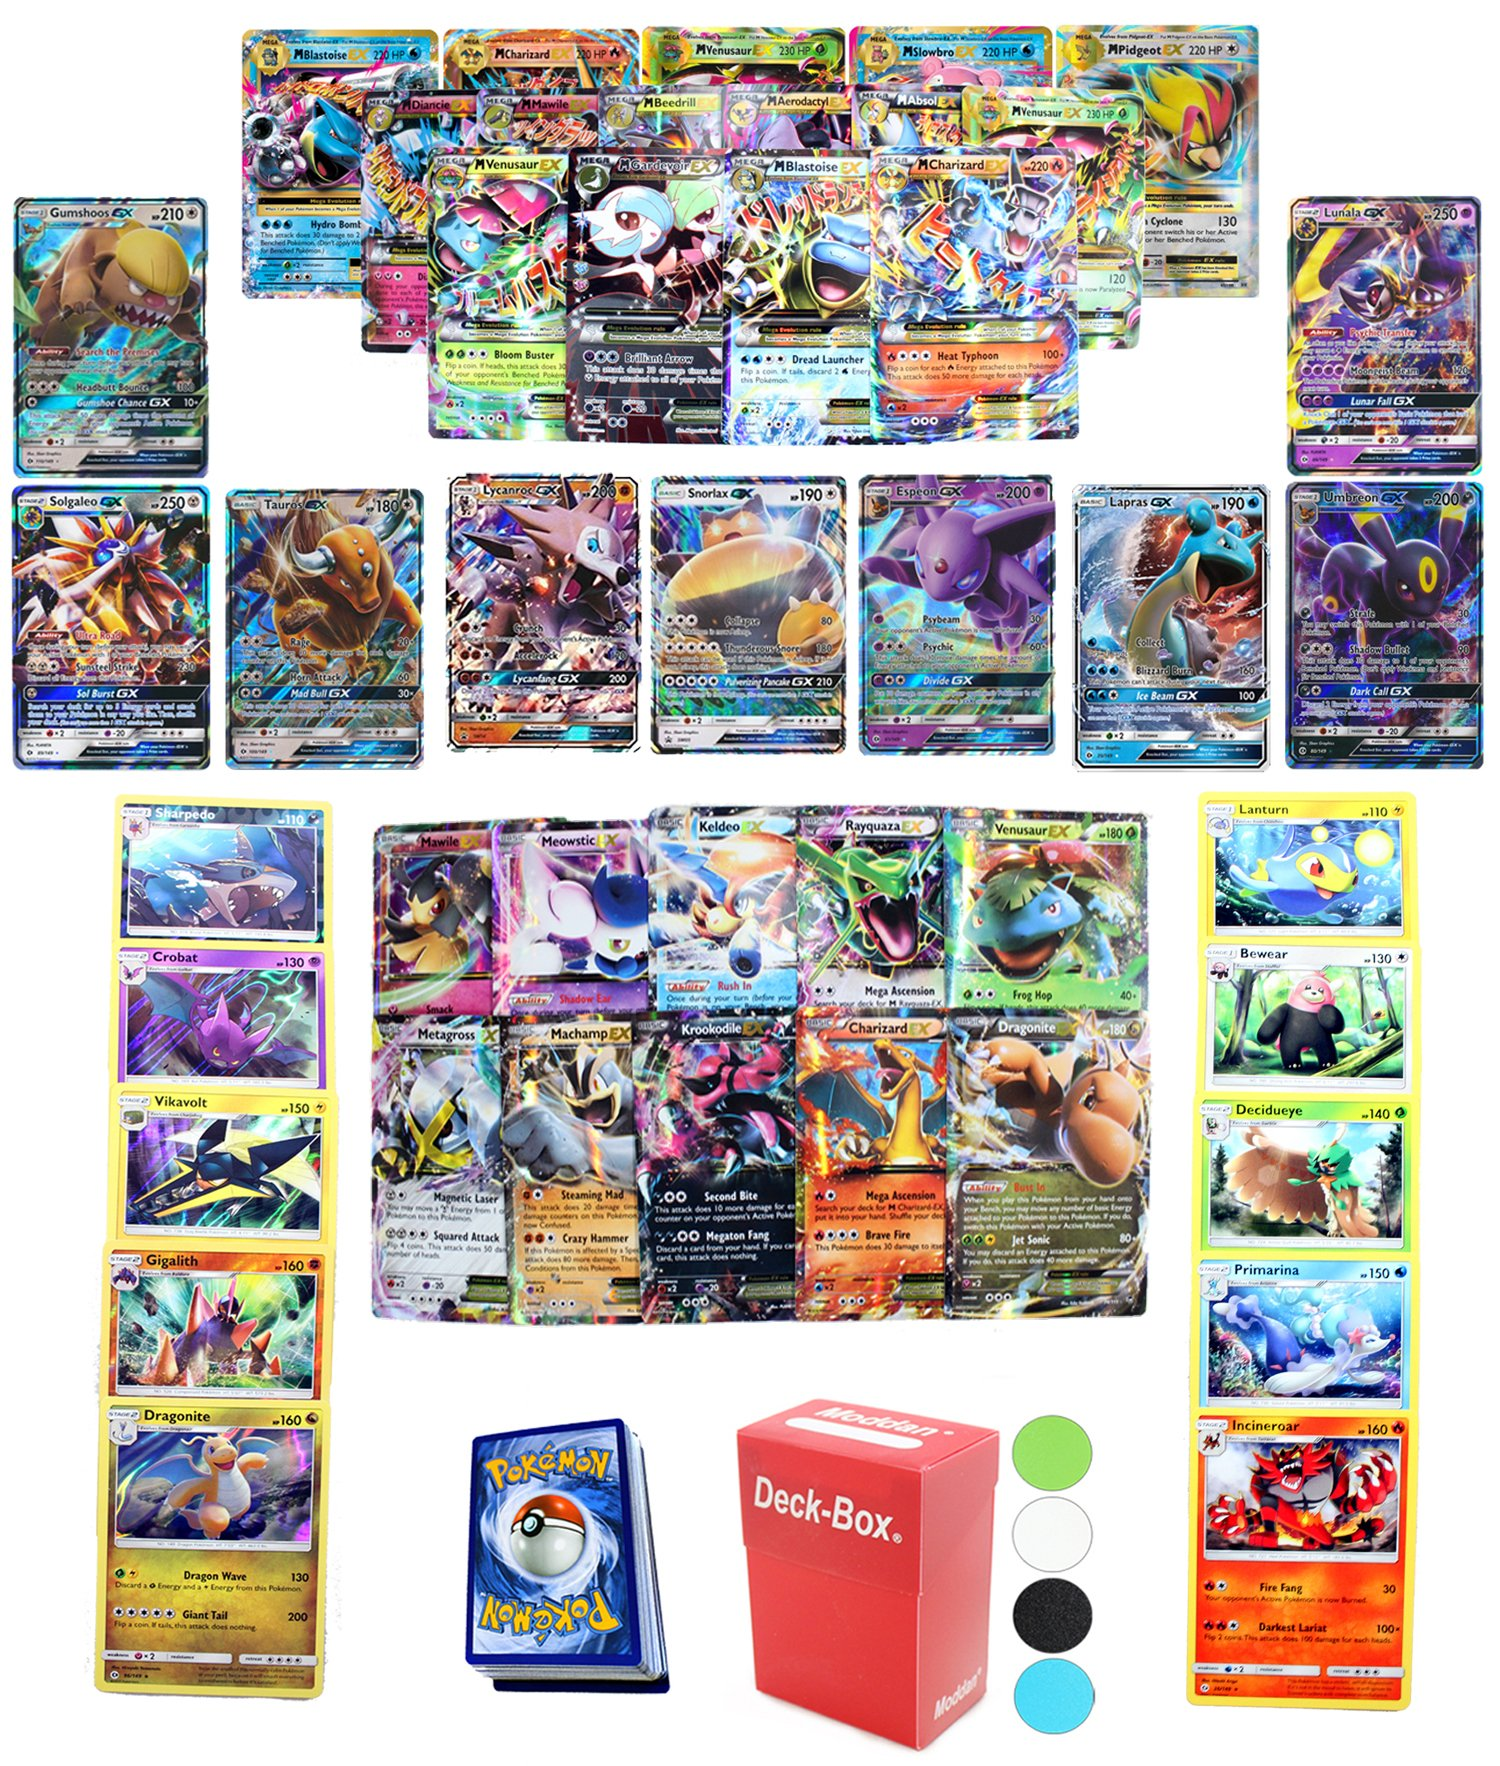 picture regarding Printable Pokemon Cards Mega Ex known as Economical Pokemon Printing Playing cards, obtain Pokemon Printing Playing cards